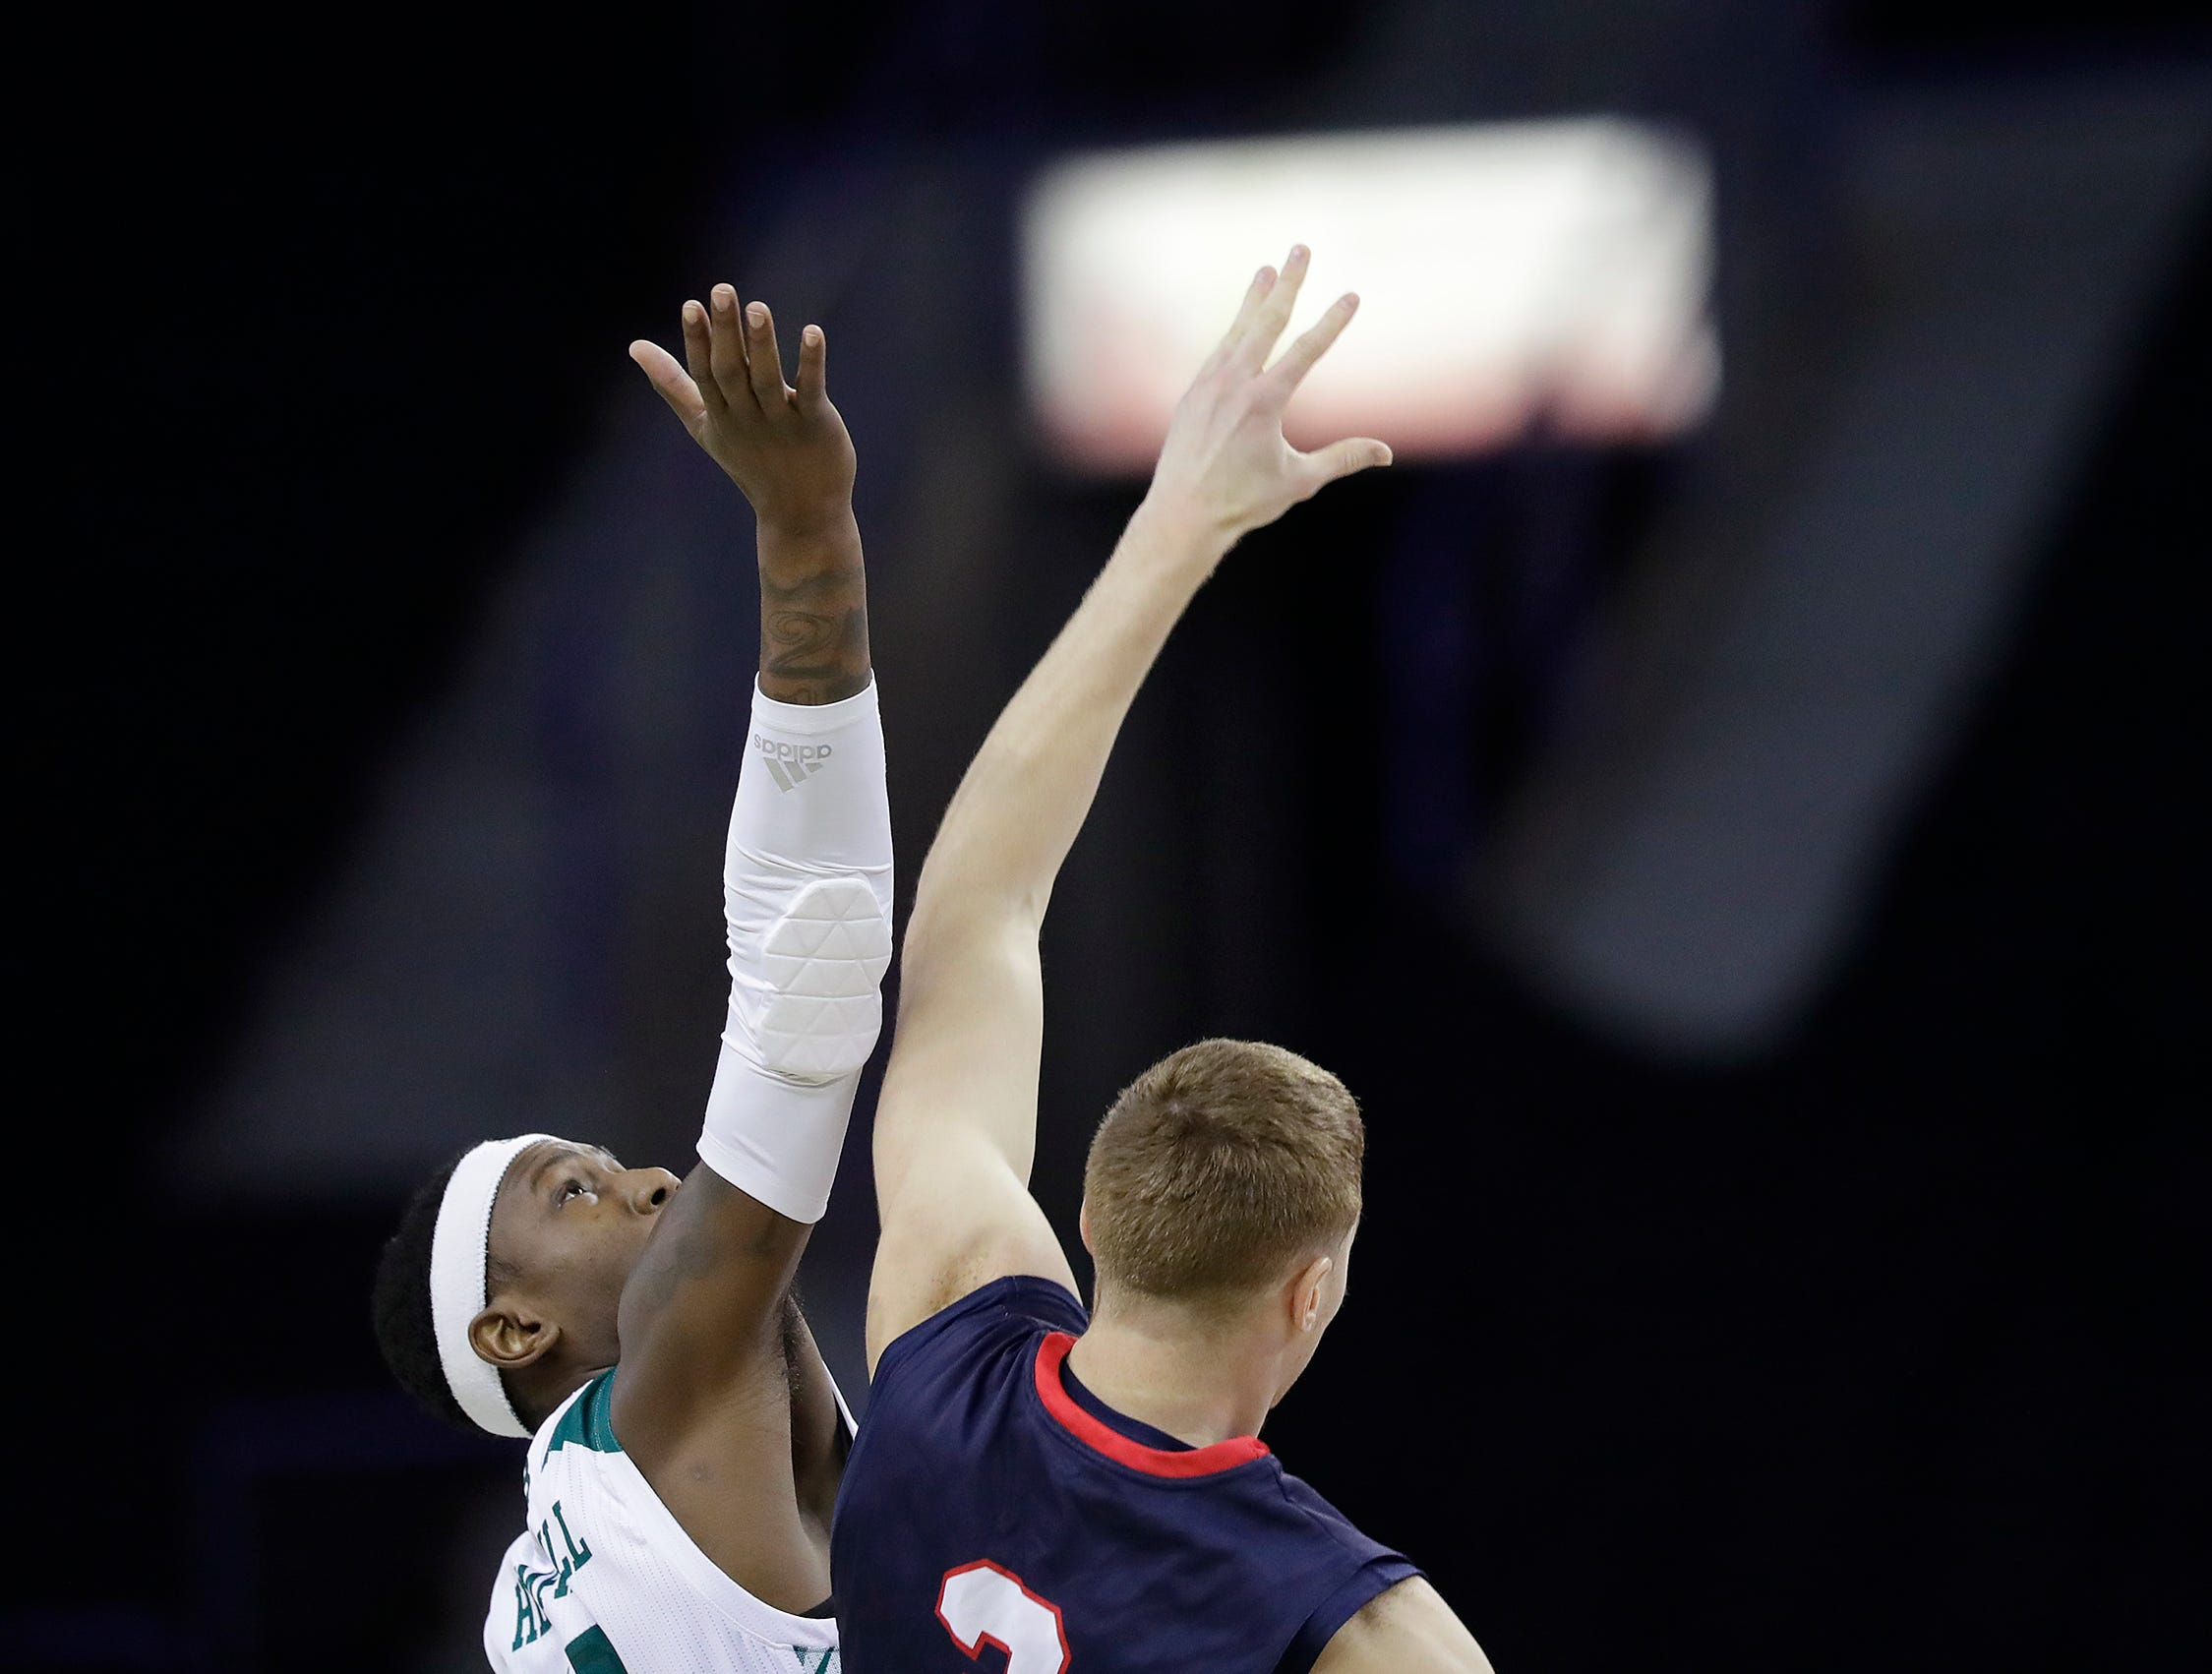 Green Bay Phoenix forward Shanquan Hemphill (10) contests the opening tipoff against Belmont Bruins guard Dylan Windler (3) in a NCAA basketball game at the Resch Center on Saturday, December 1, 2018 in Ashwaubenon, Wis.